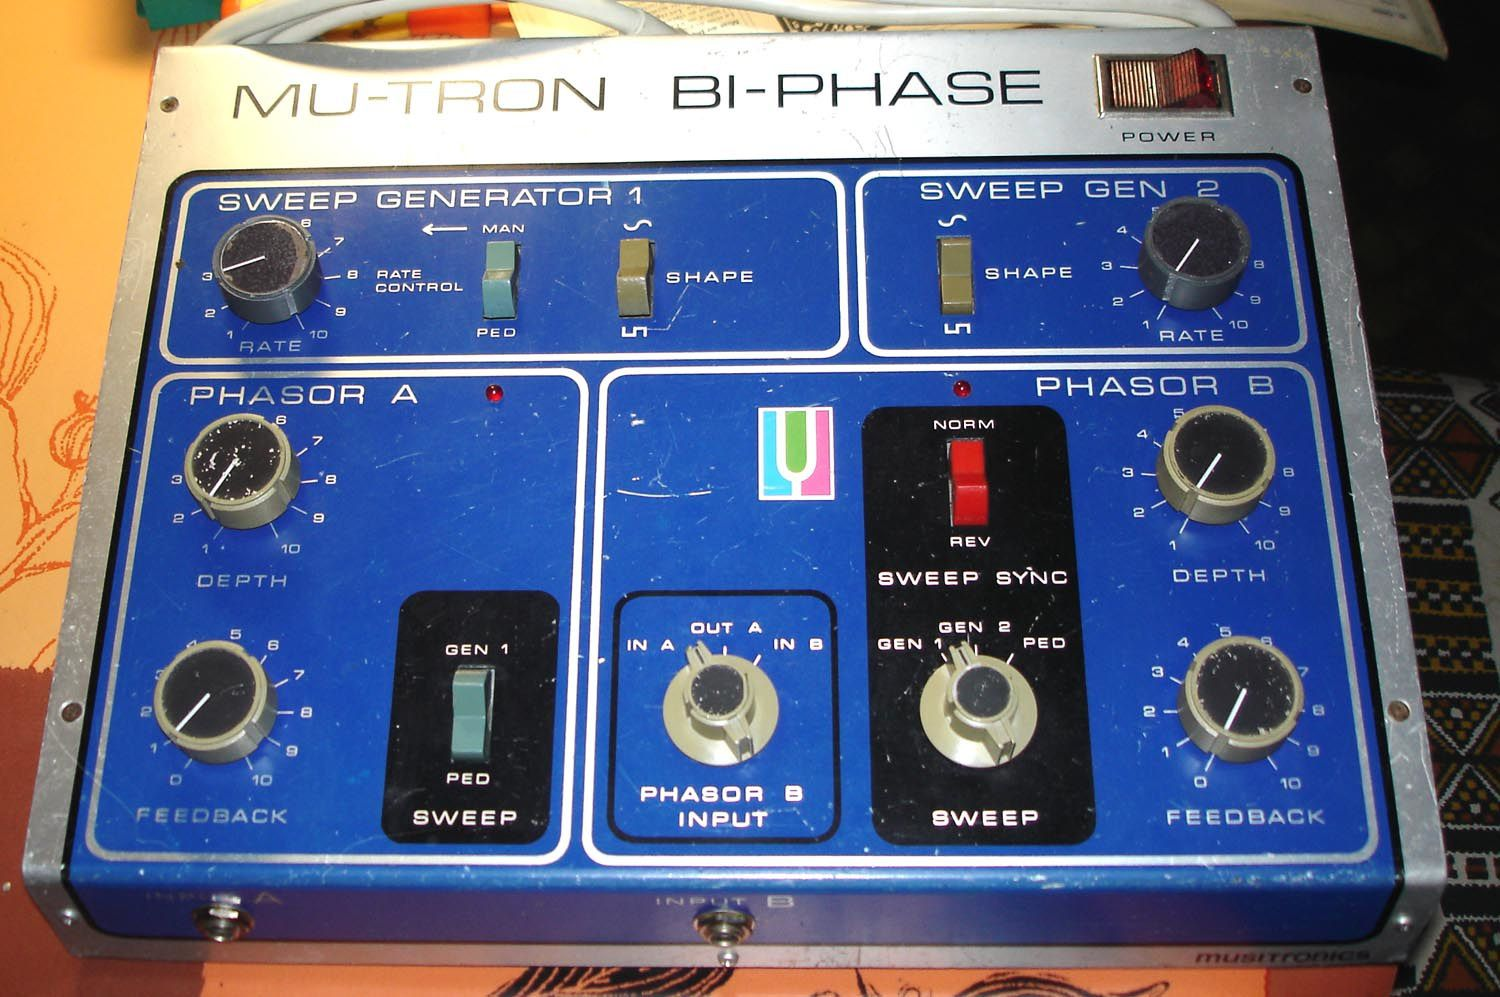 mu-tron biphase musitronic - plans et clonage